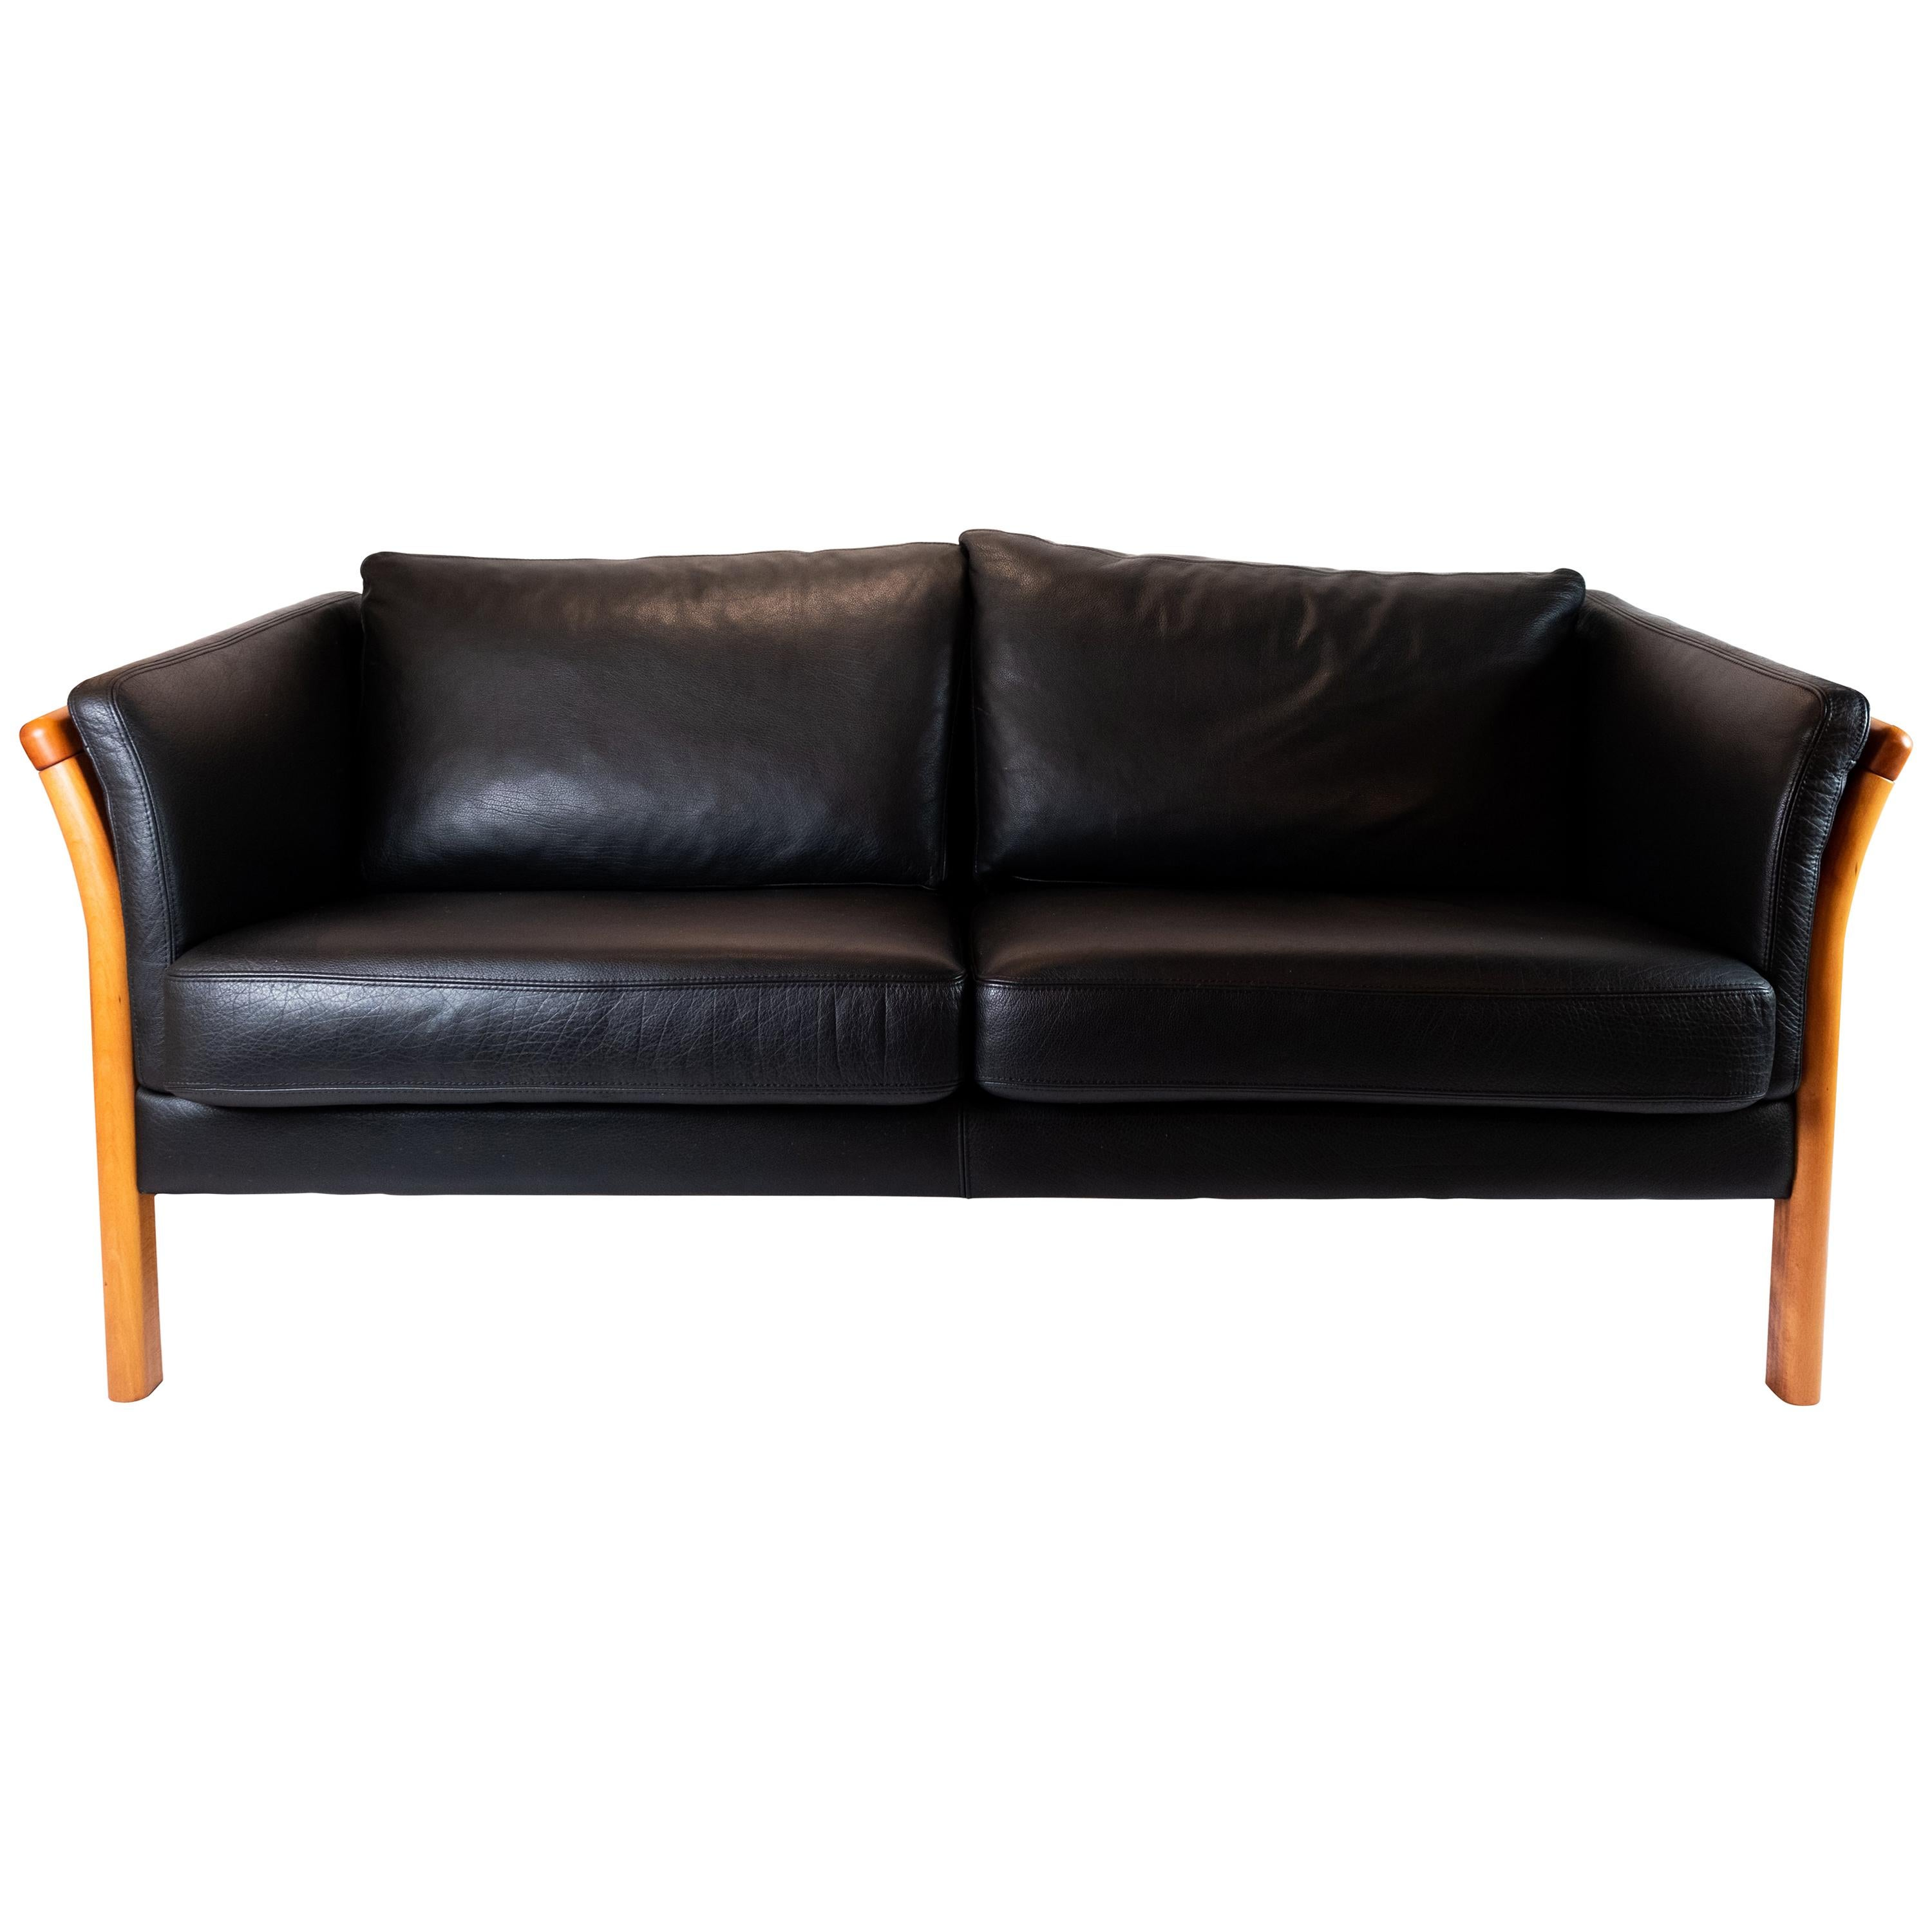 Two-Seat Sofa Upholstered with Black Leather and of Danish Design